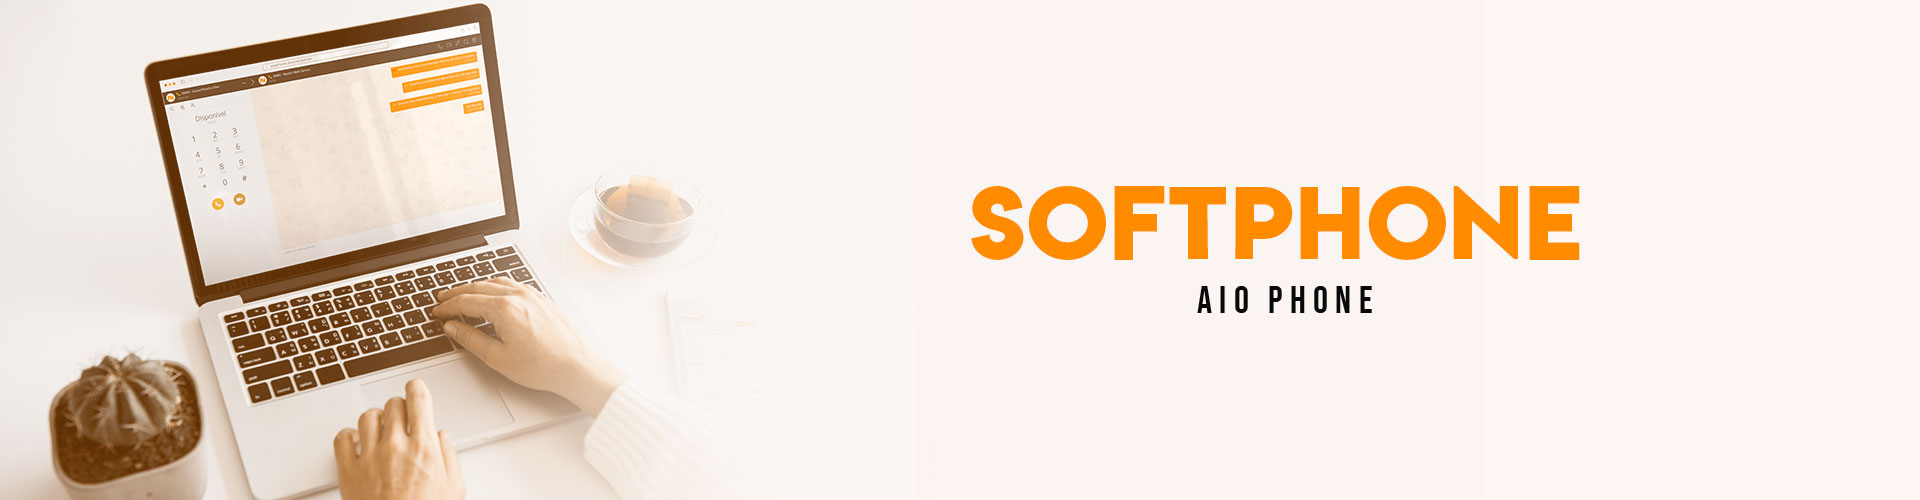 Call Center - Softphone